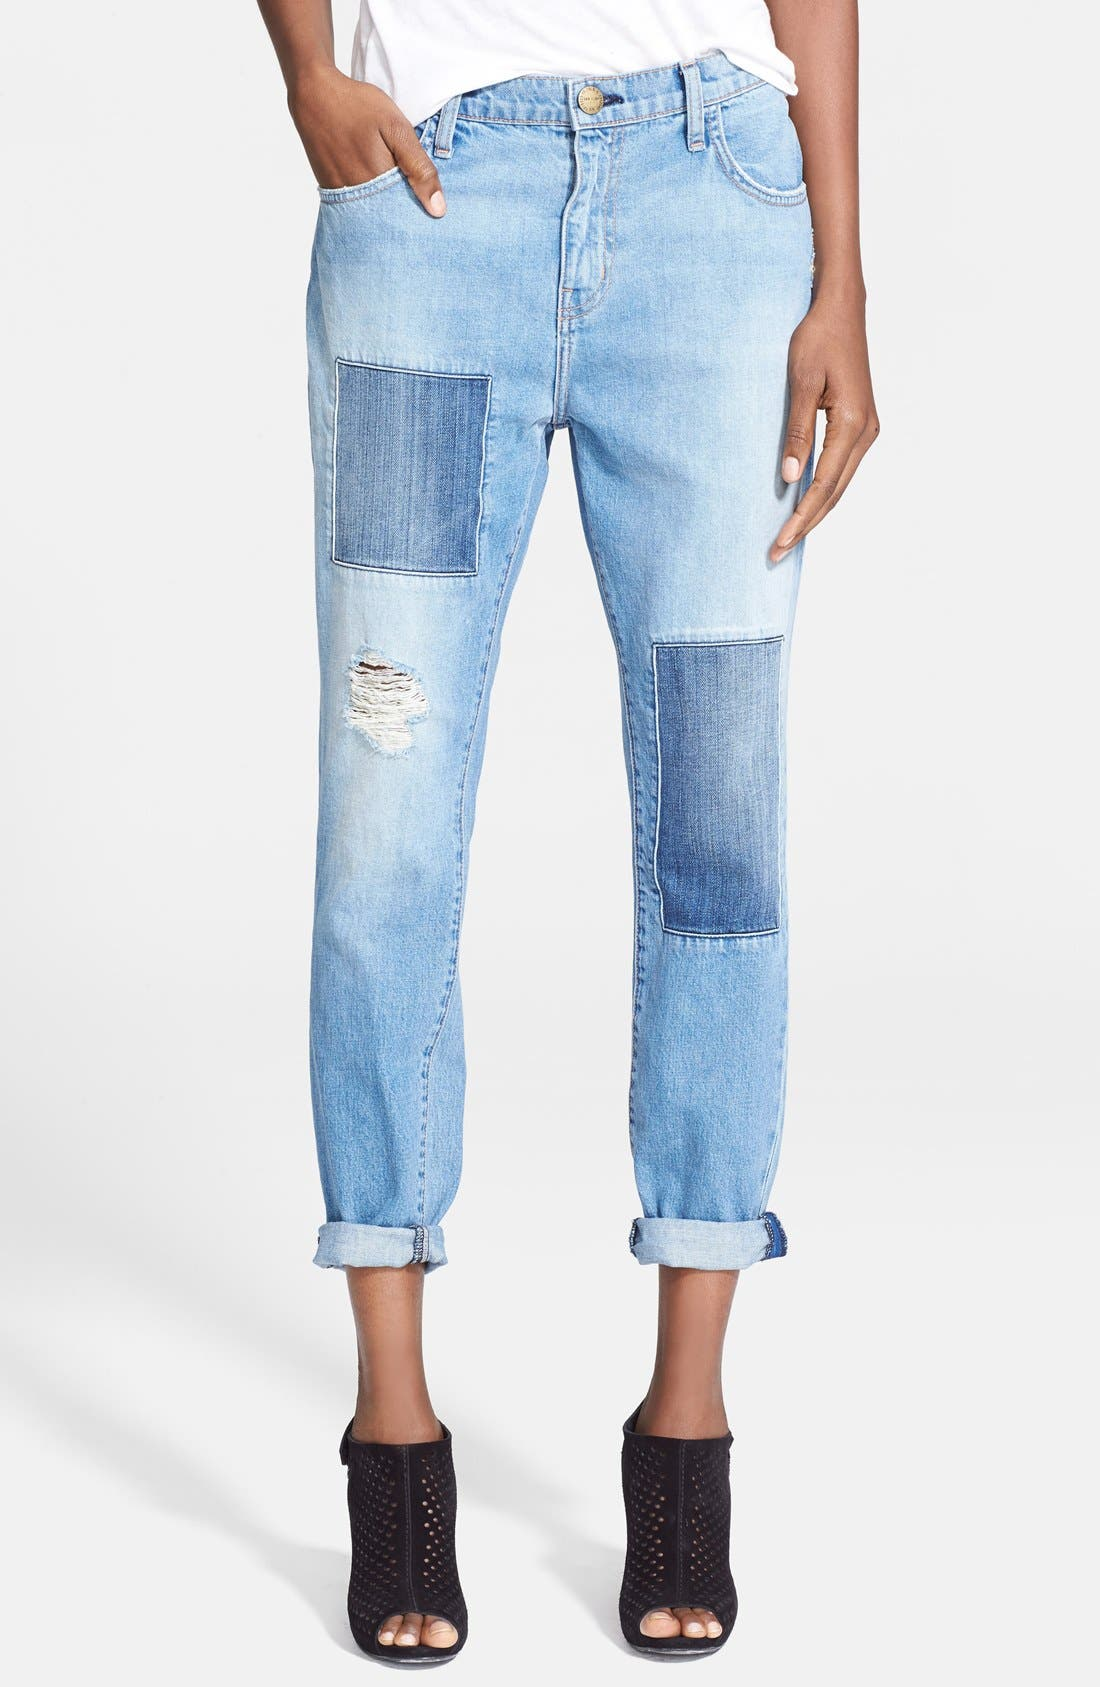 Main Image - Current/Elliott 'The Fling' Destroyed Crop Jeans (Kasey with Repair)